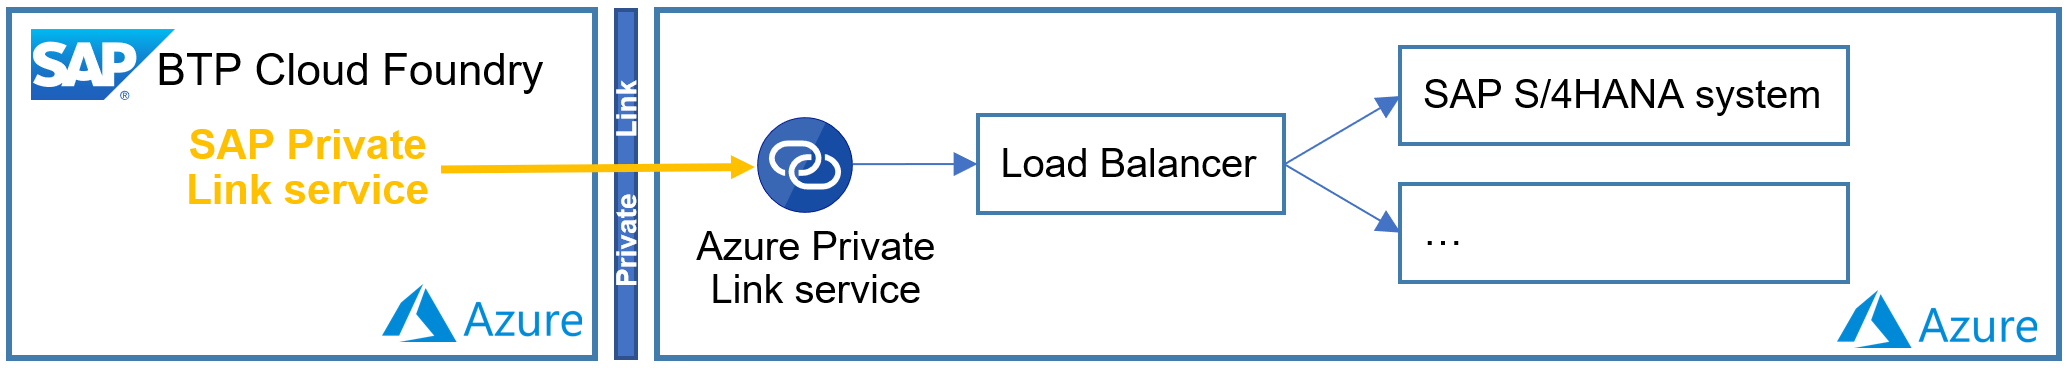 Connection%20from%20SAP%20BTP%20Cloud%20Foundry%20to%20a%20loadbalancer%20on%20Azure